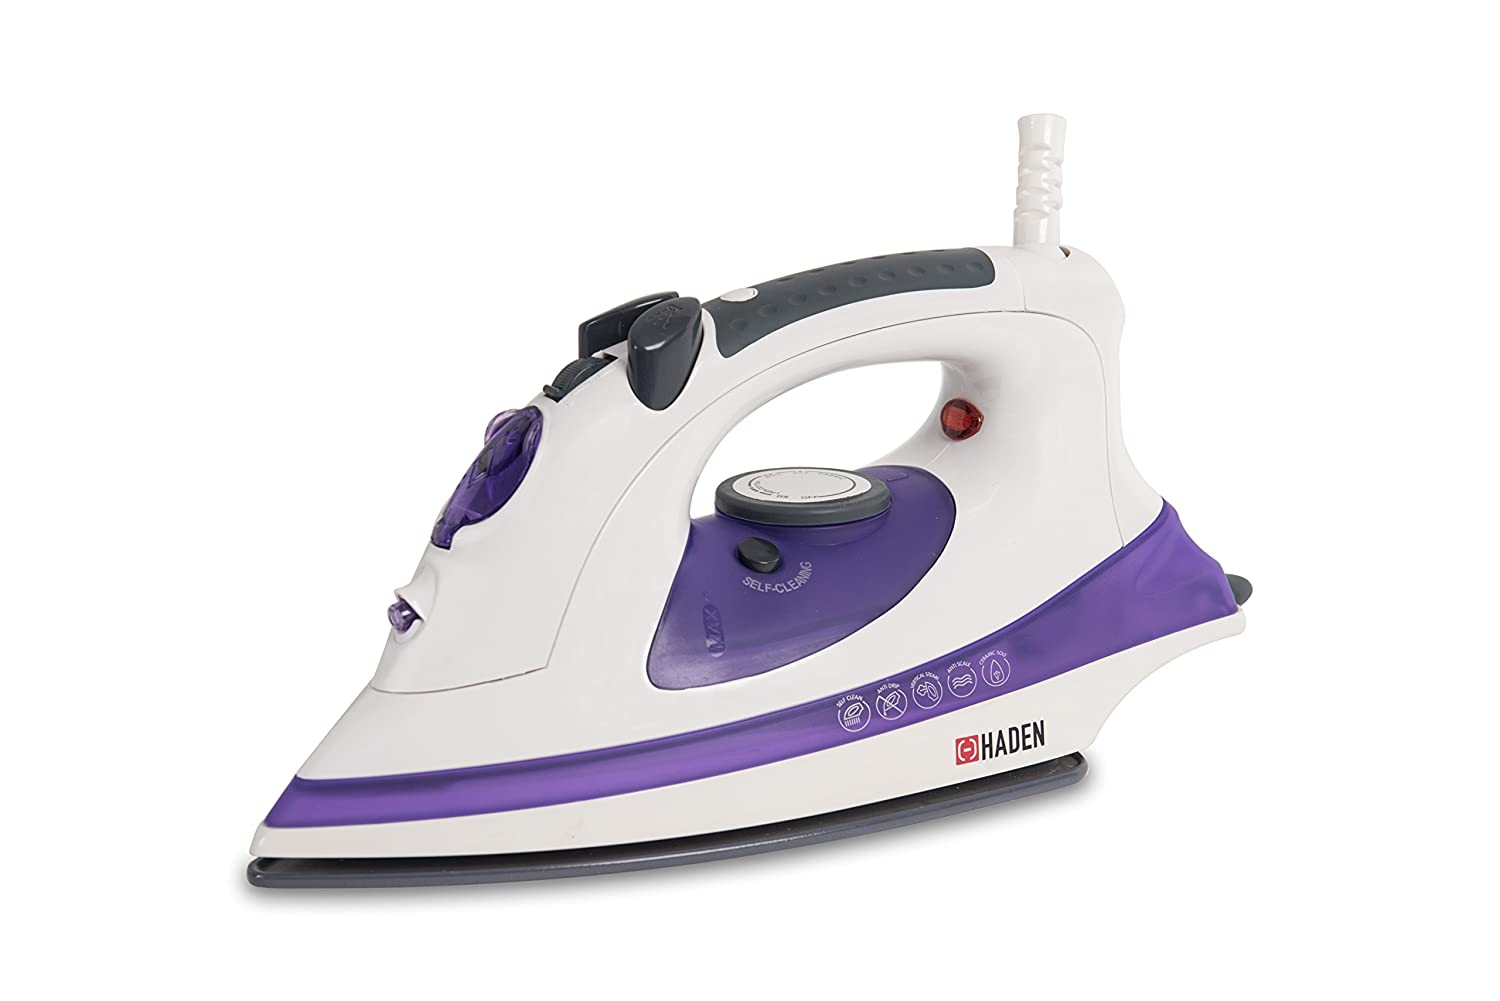 Haden 182739 Power Glide Pro Iron, 2400 W, Purple